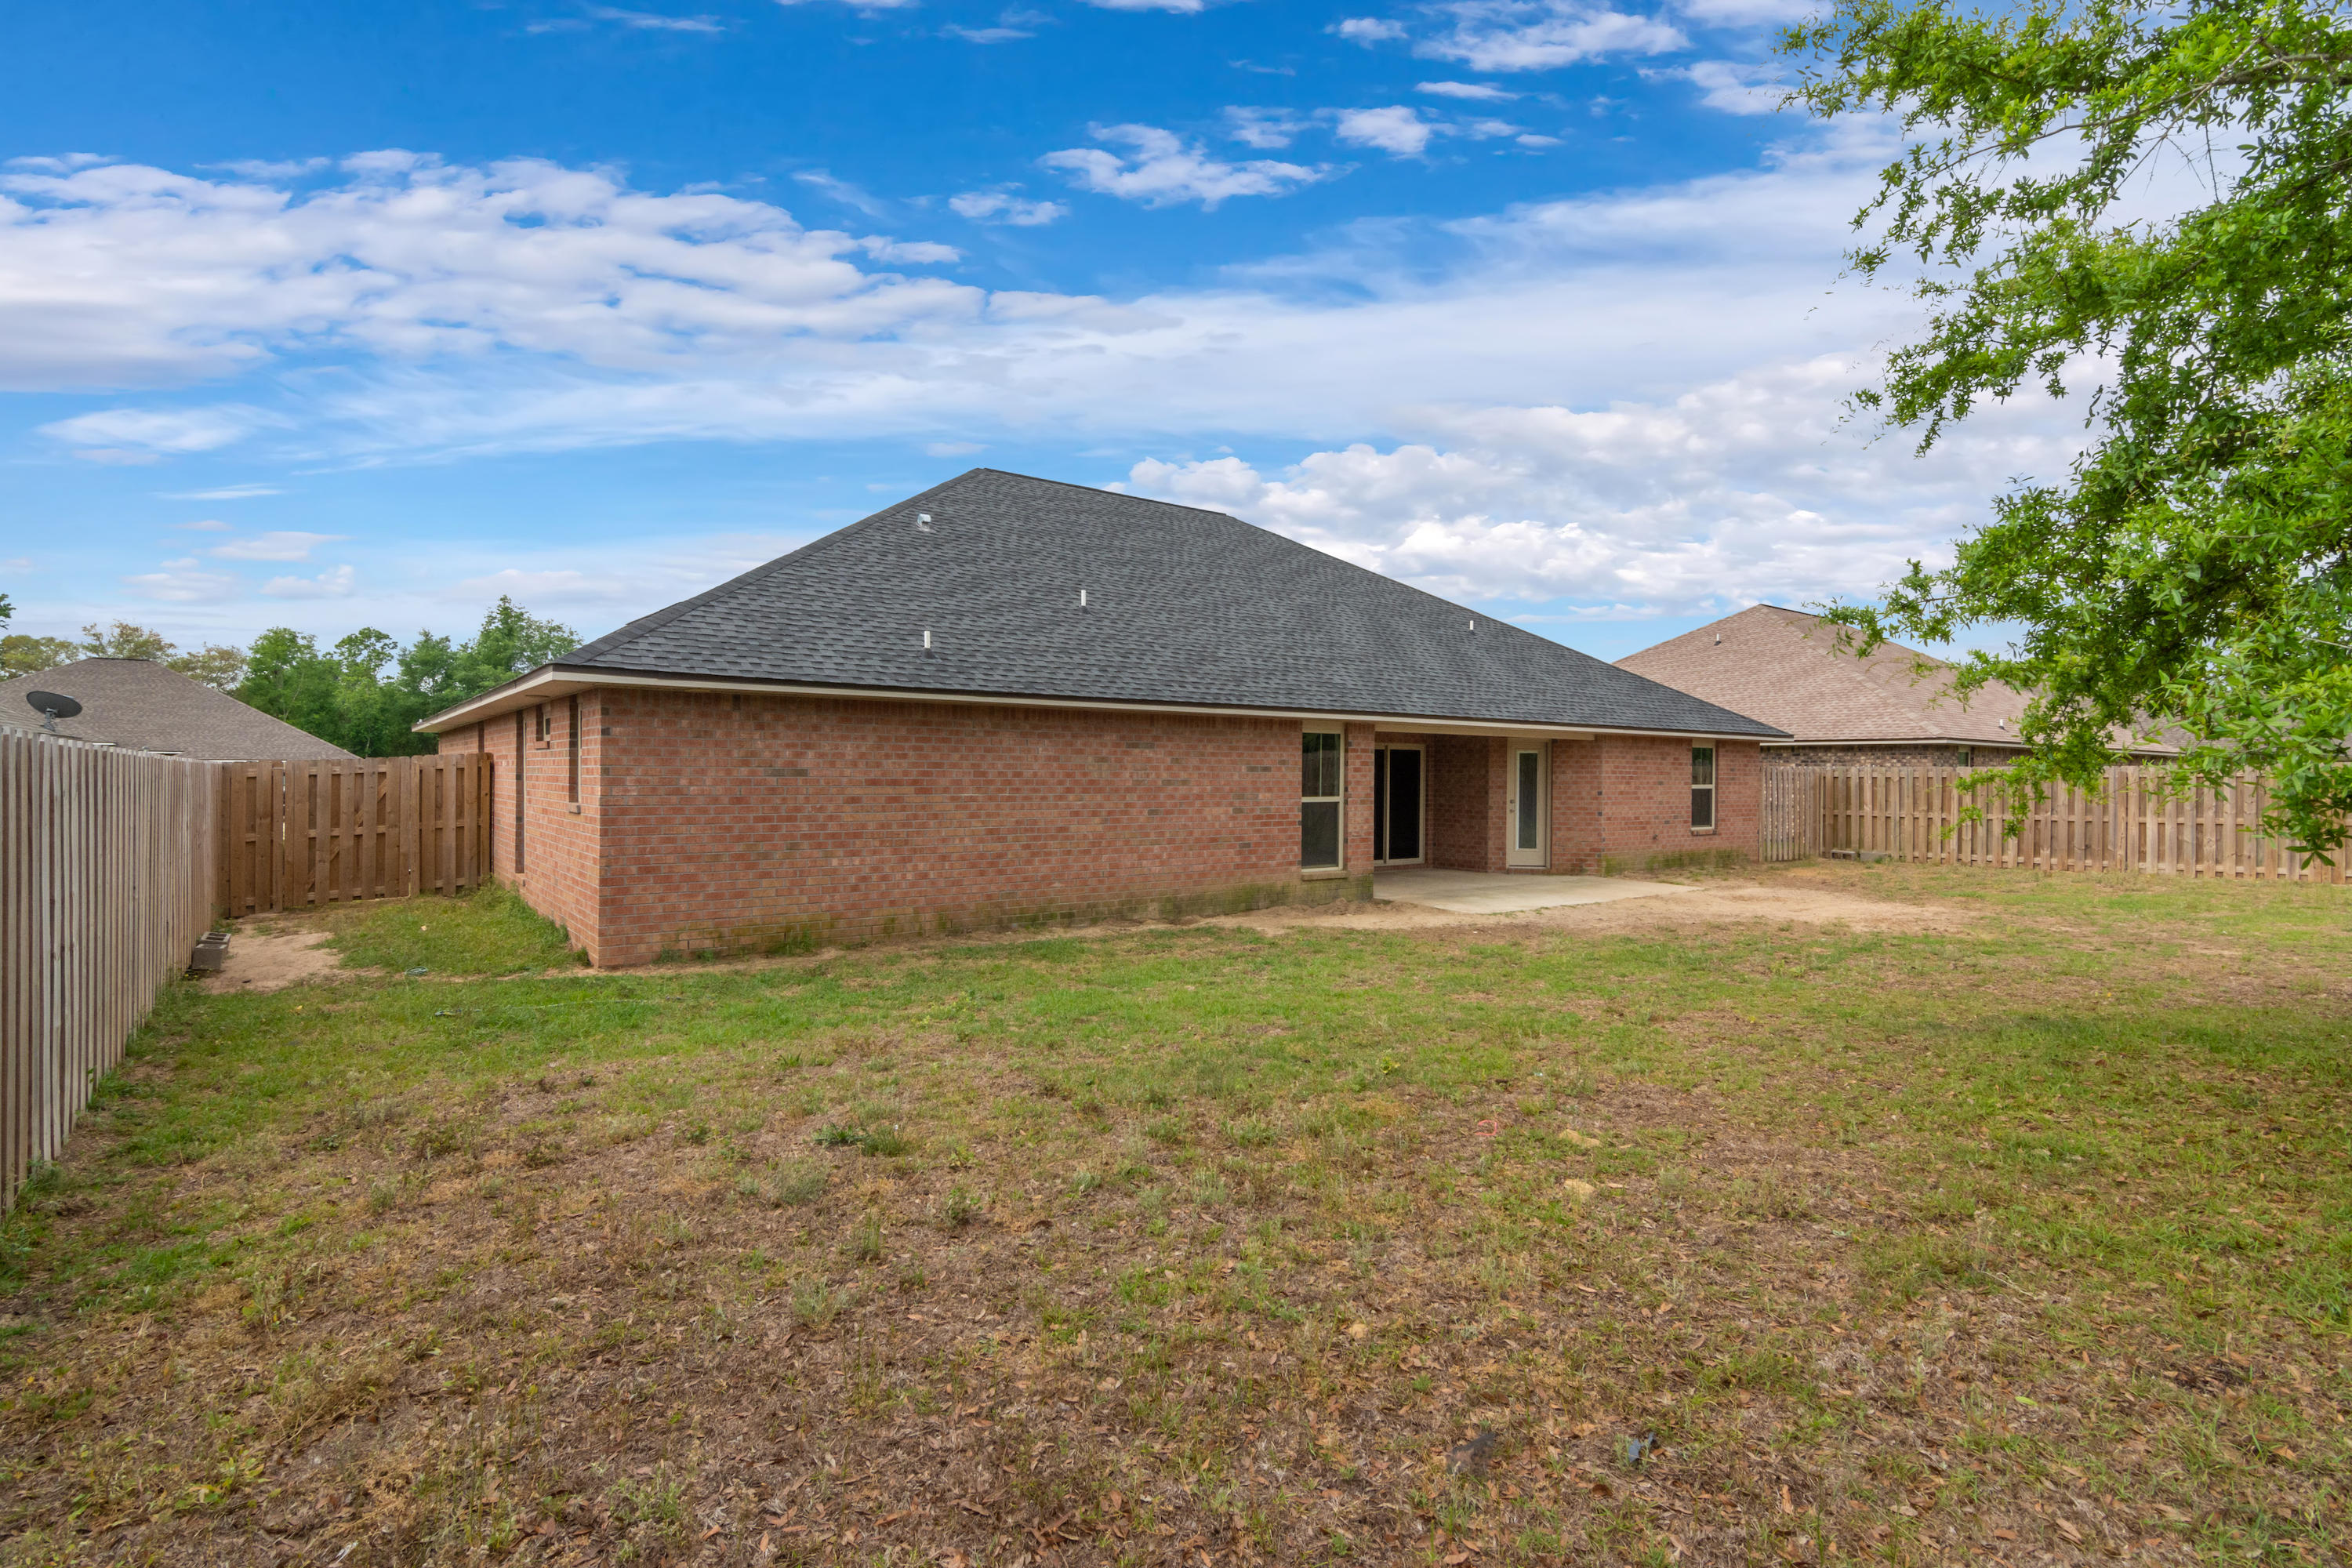 Photo of home for sale at 4734 Chanson, Crestview FL